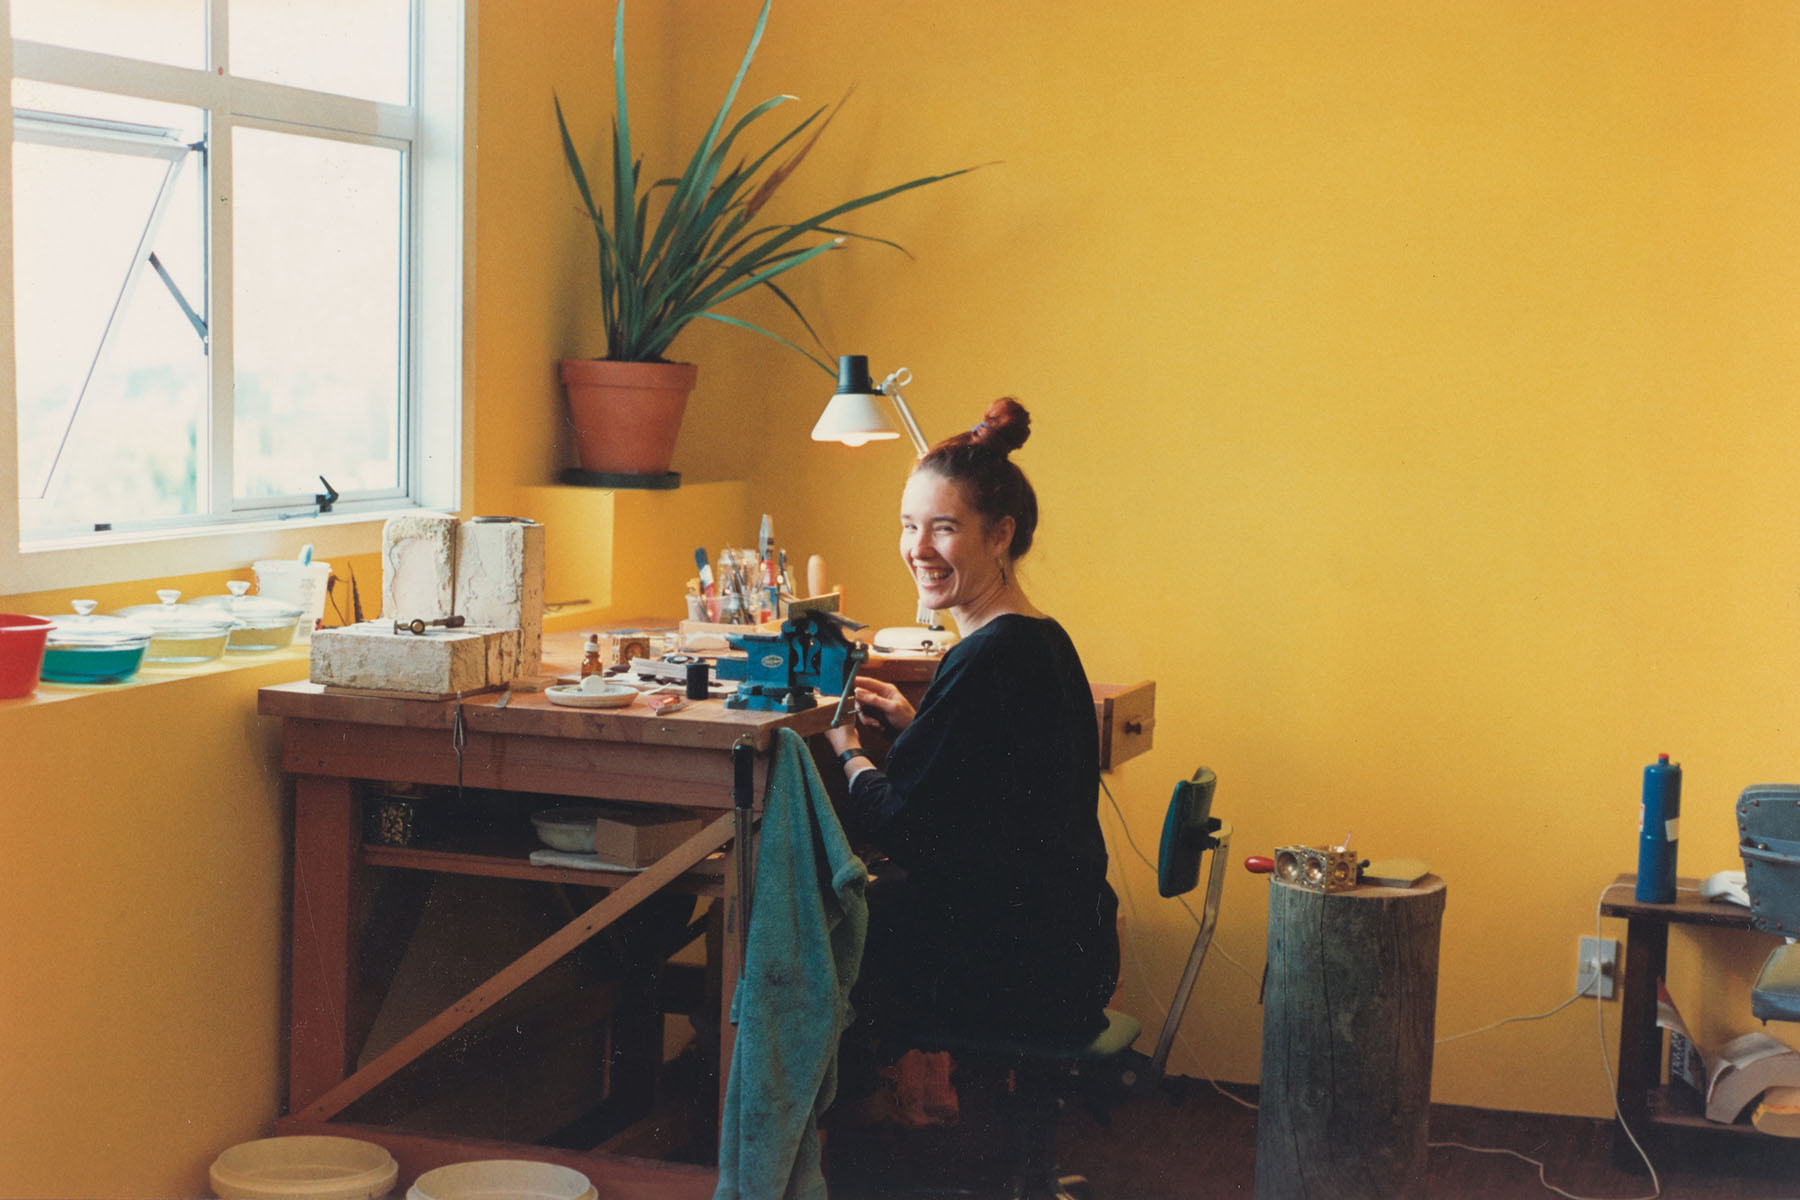 Lisa sits at desk in room with bright yellow walls crafting jewellery